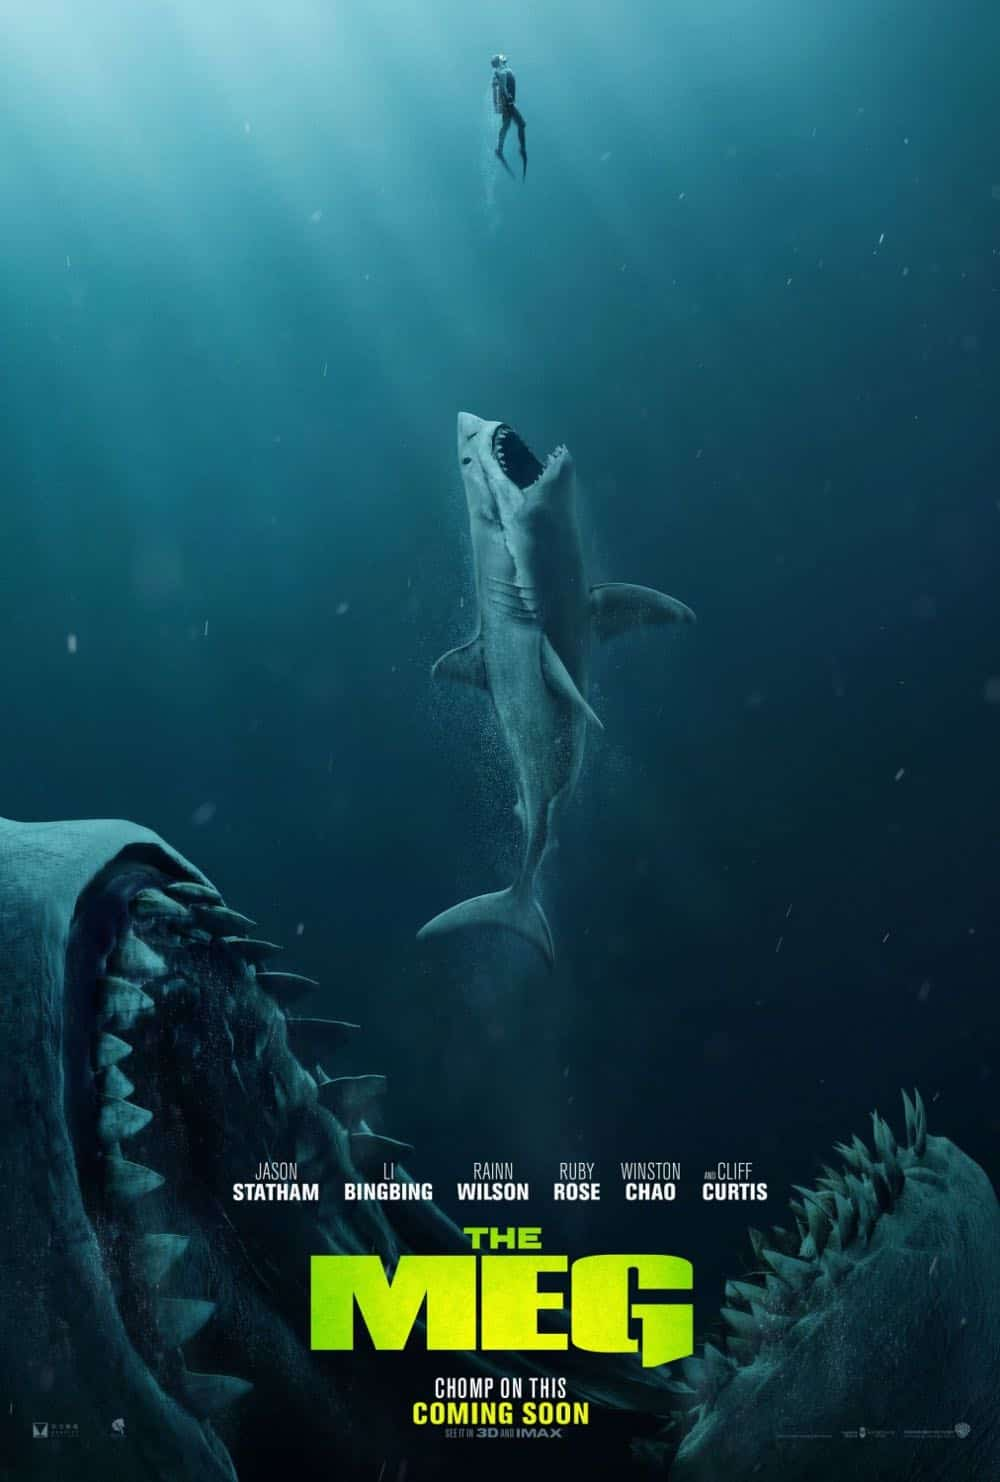 THE MEG Movie Trailer + Poster | | SEAT42F